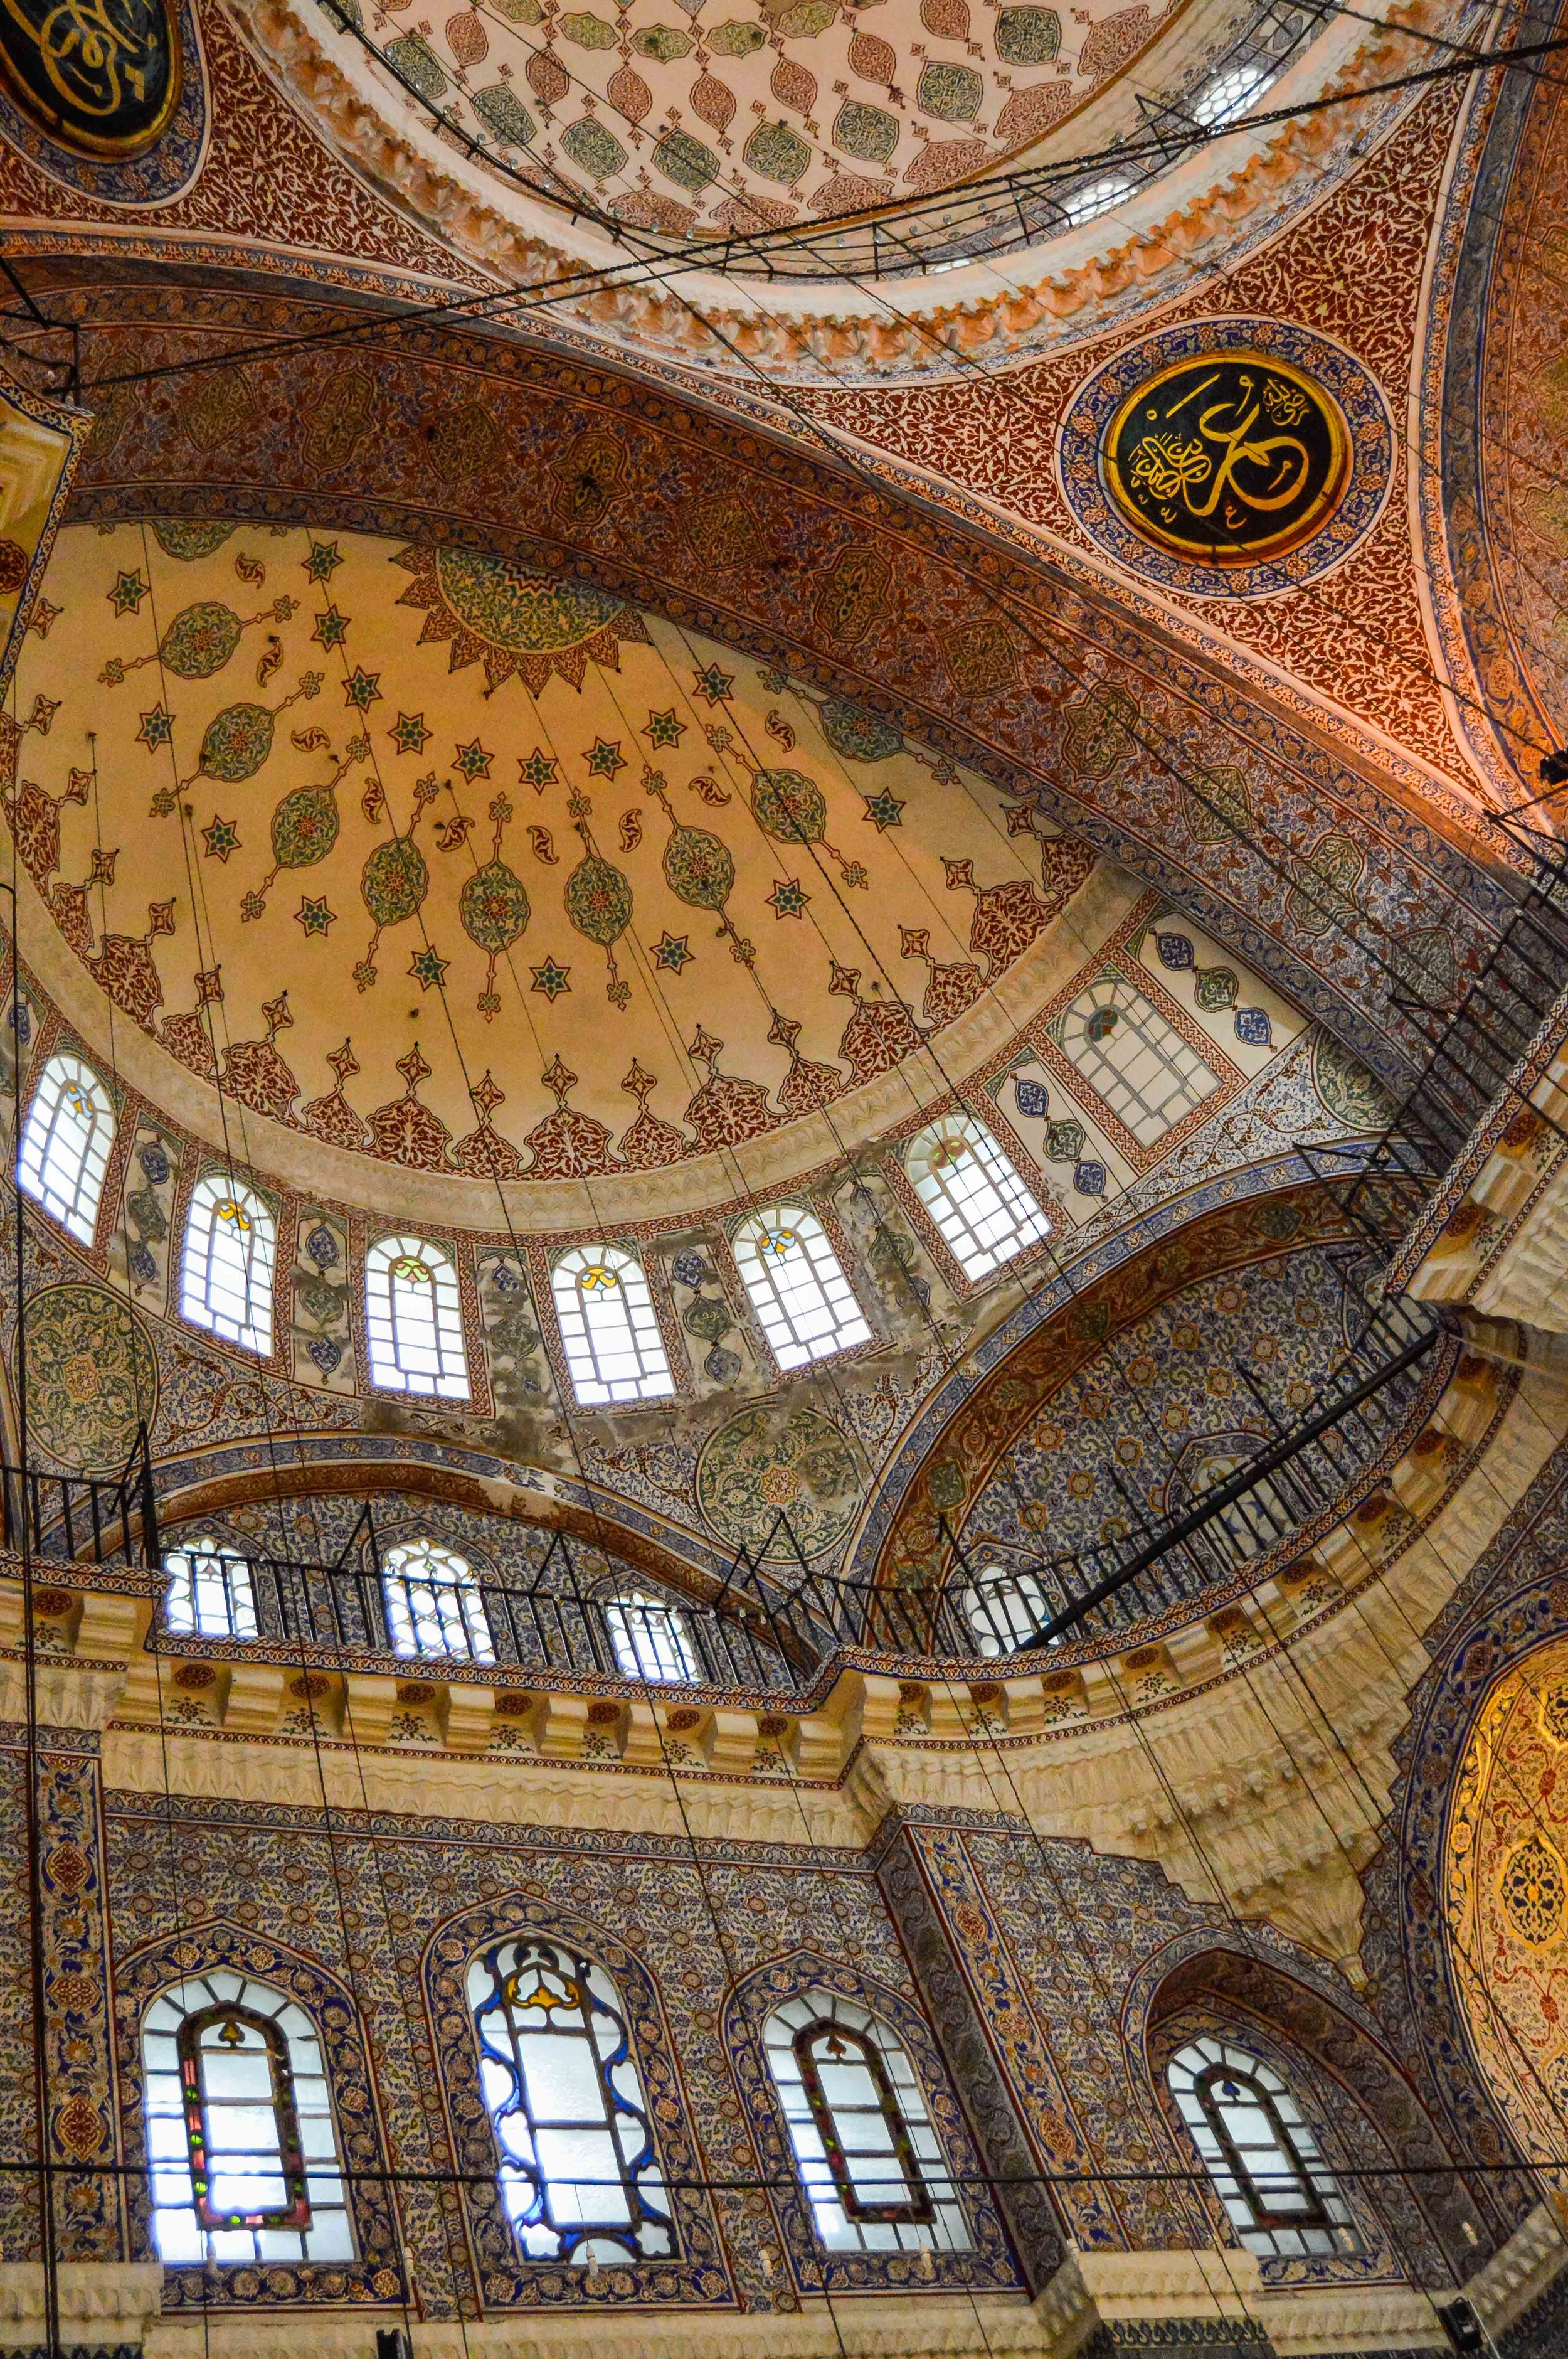 New Mosque Yeni Camii Muslim Ottoman Mosaic Tile Persian Empire Constantinople Architecture Istanbul Turkey